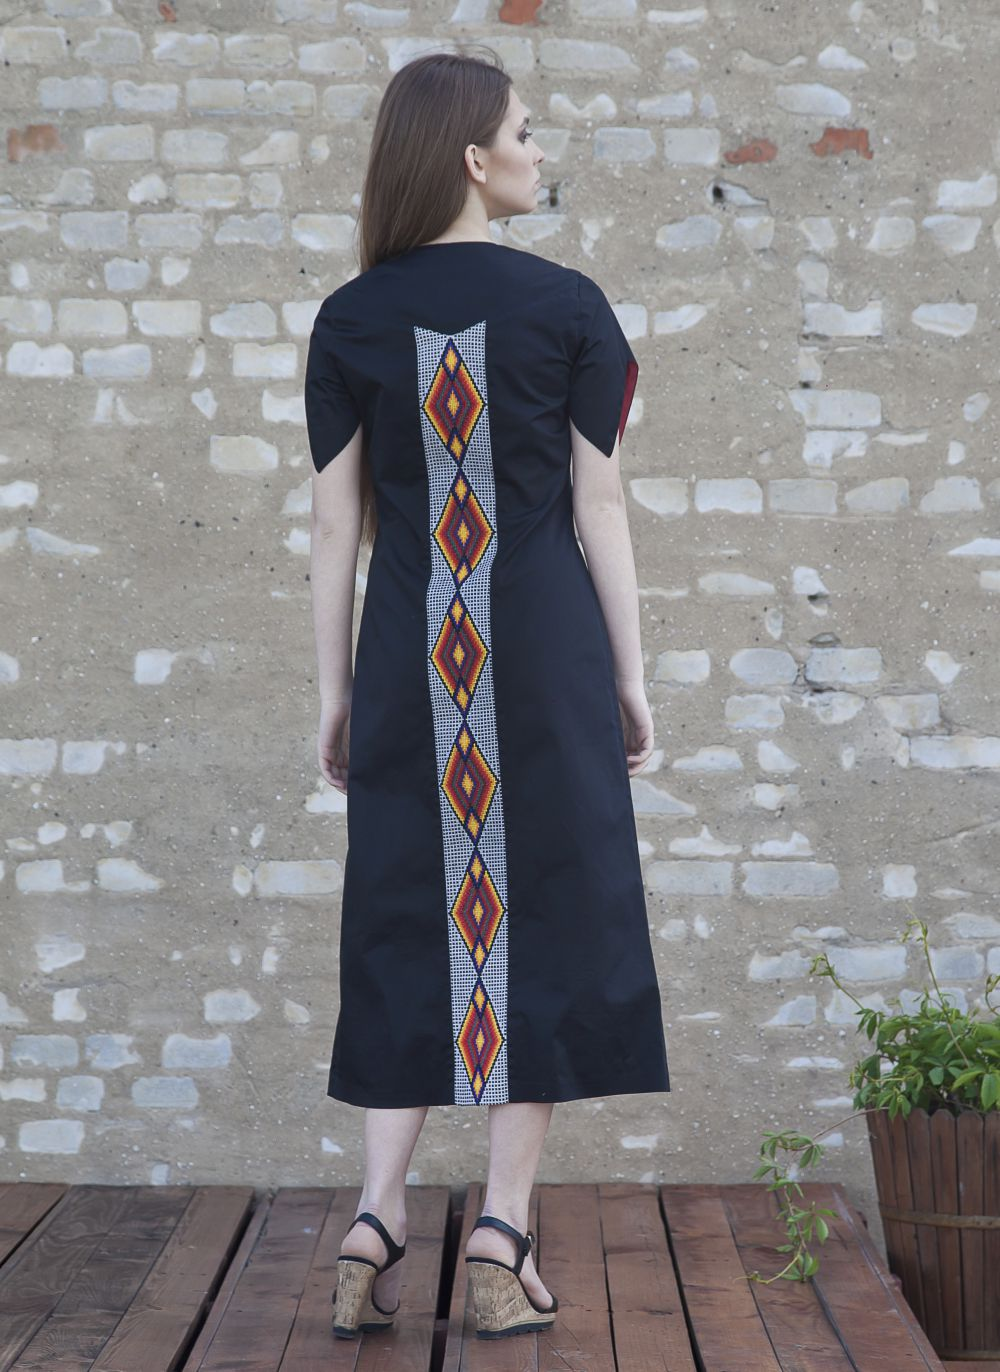 Dress with embroidered details